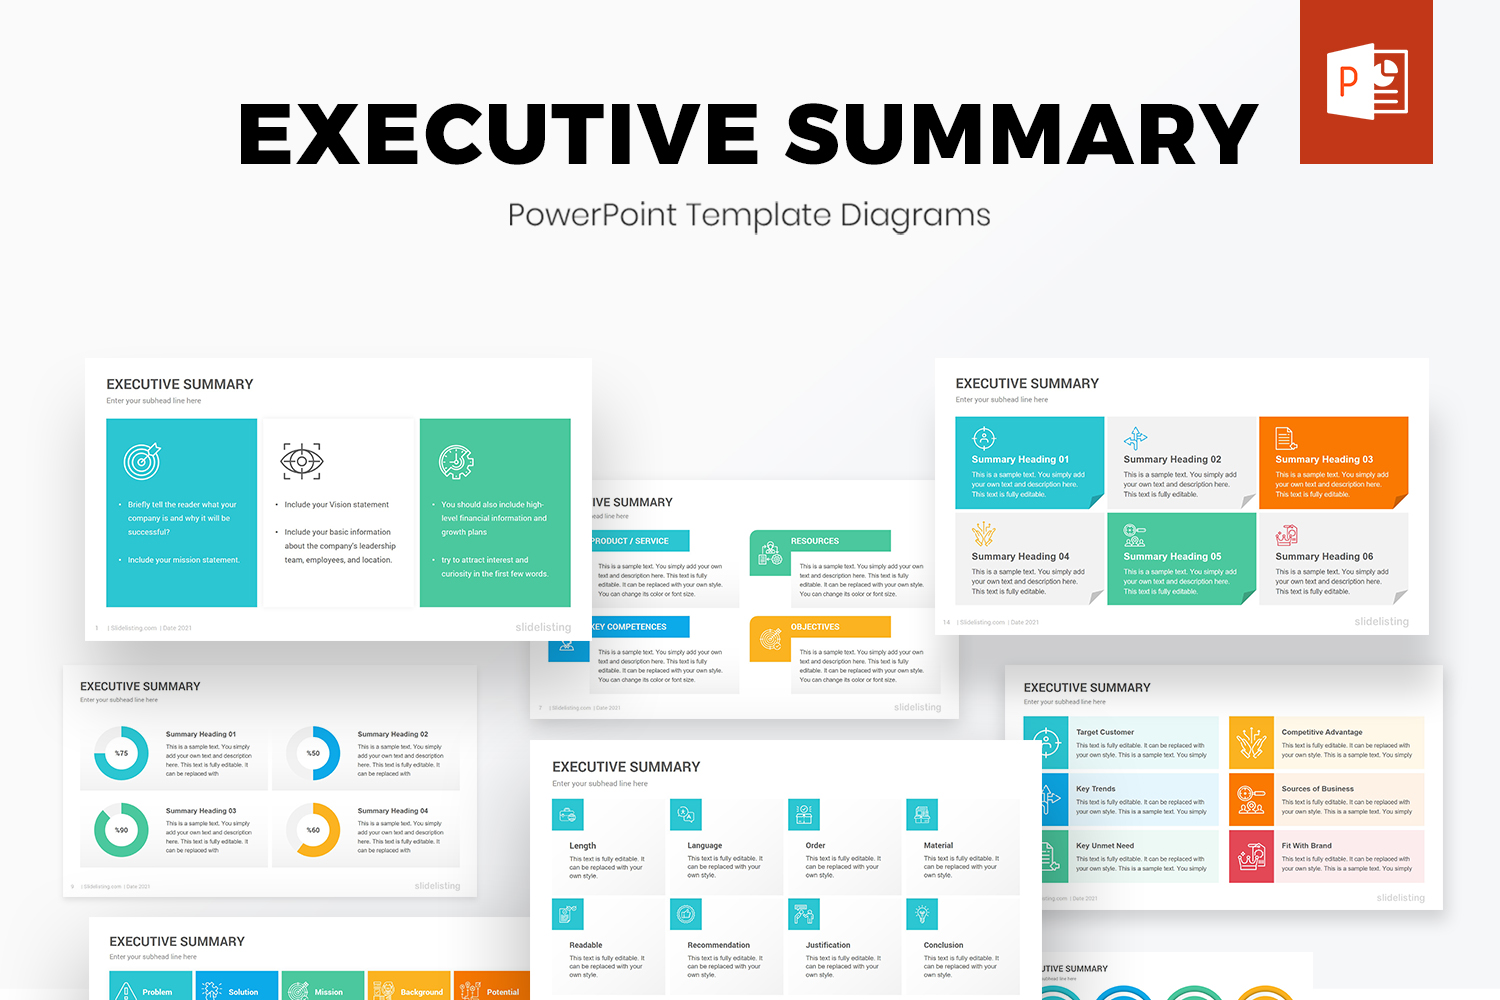 Executive Summary PowerPoint Diagrams